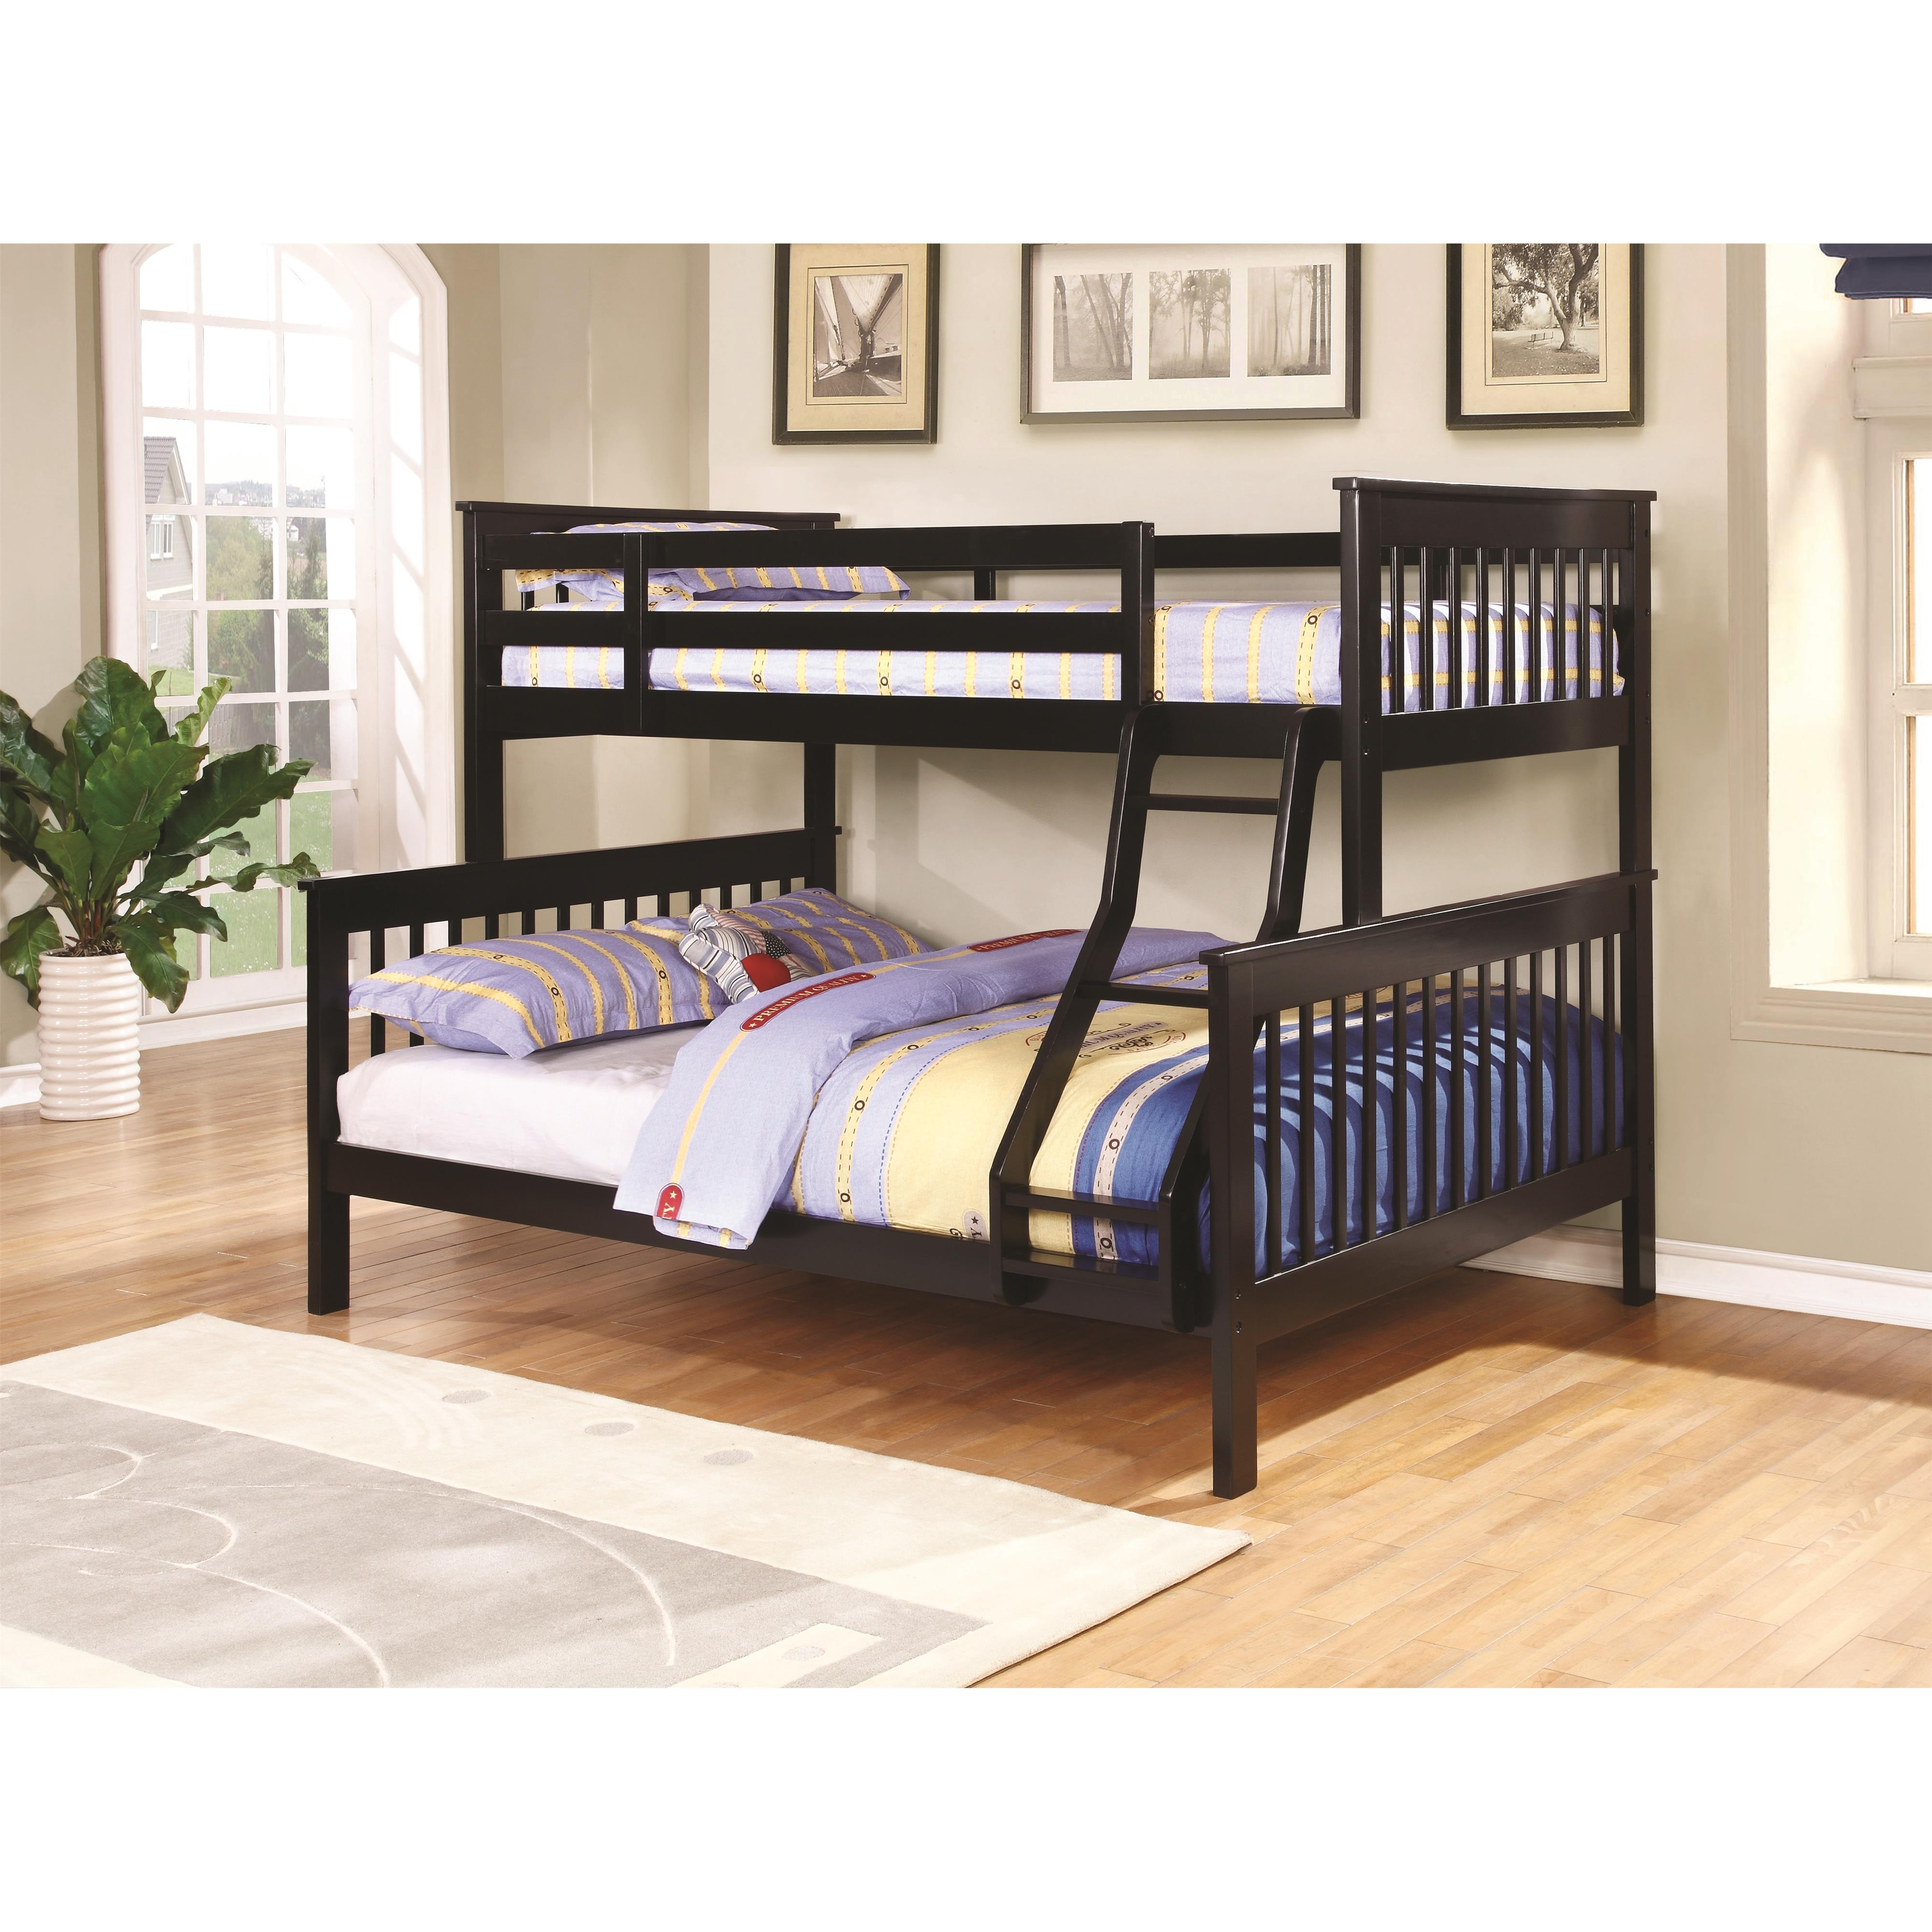 Coaster Bunks Bunk Bed - Item Number: 460259